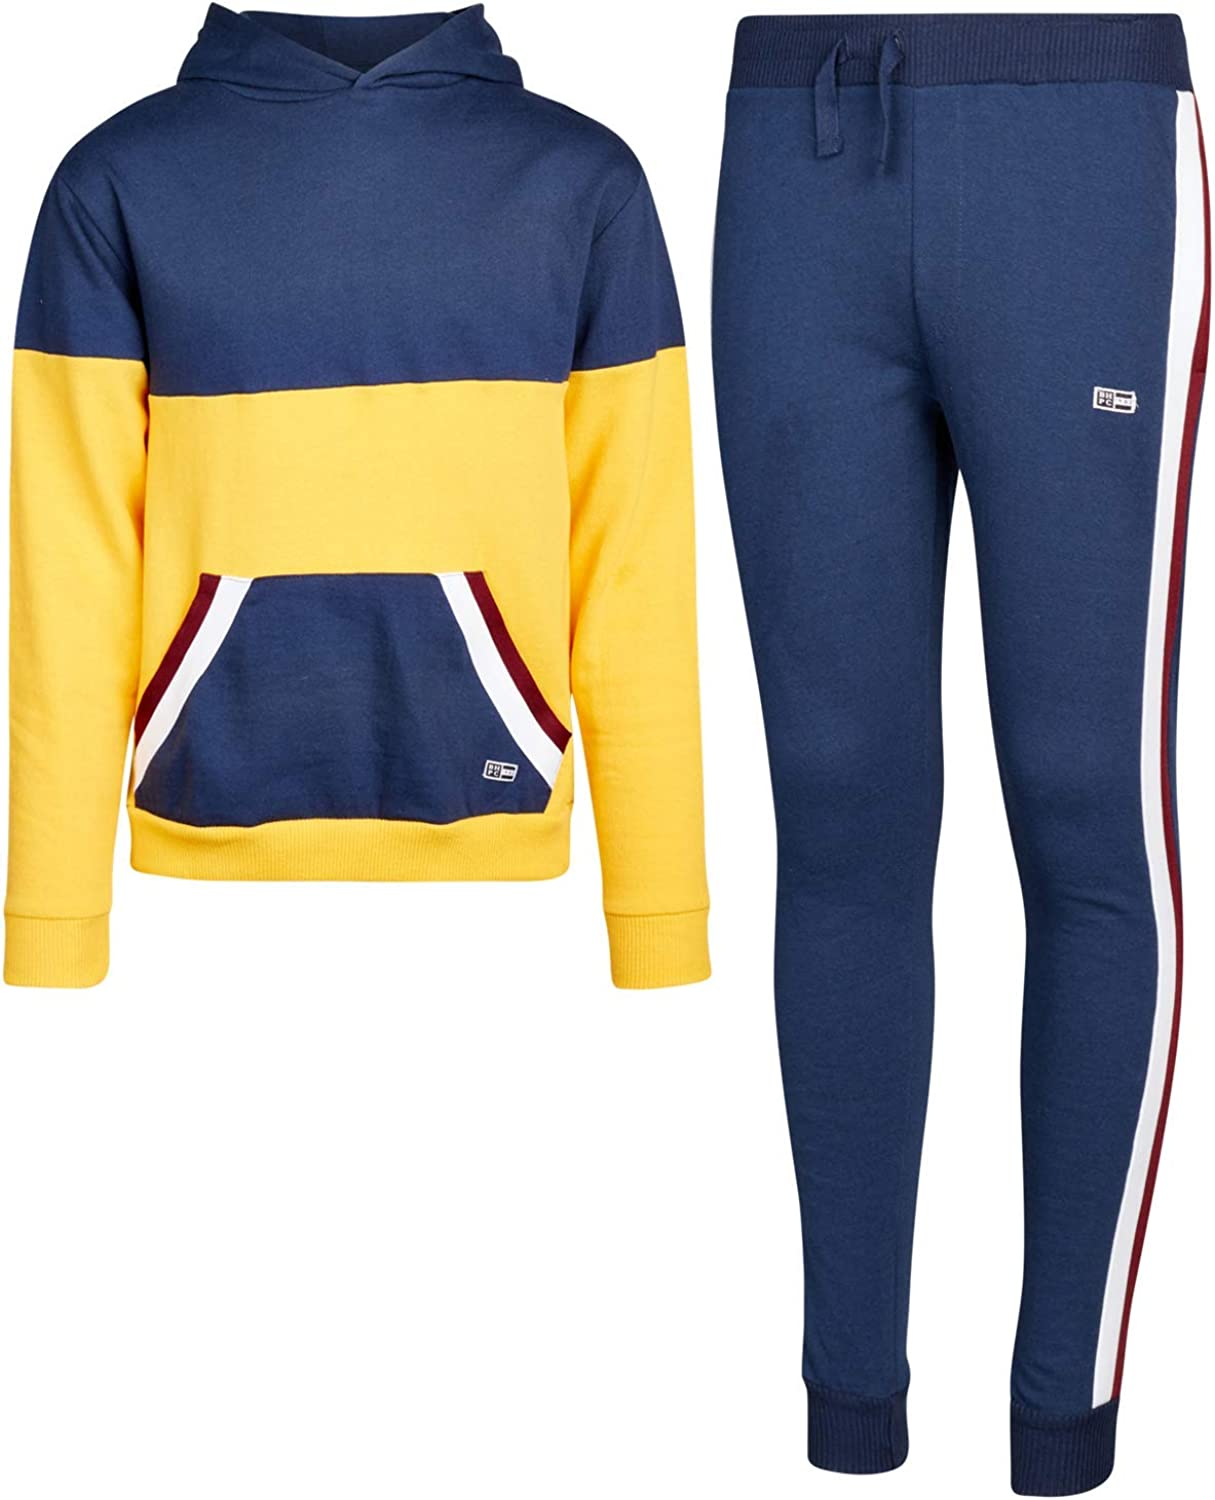 Beverly Hills Polo Club Boys Jogger Set Fleece Pullover Hoodie Sweatshirt and Sweatpants Outfit